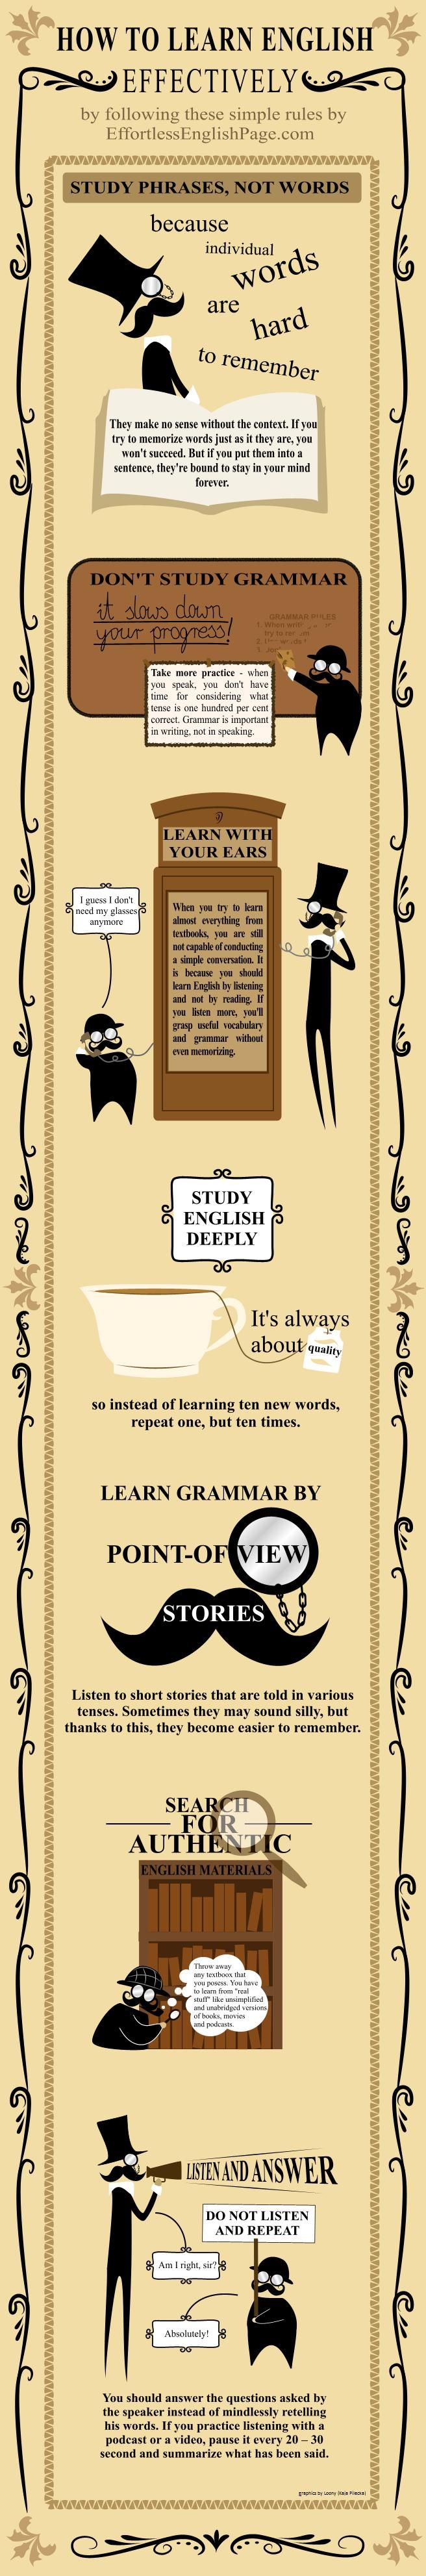 best ideas about how to learn english esl how how to learn english effectively infographic effortless english page